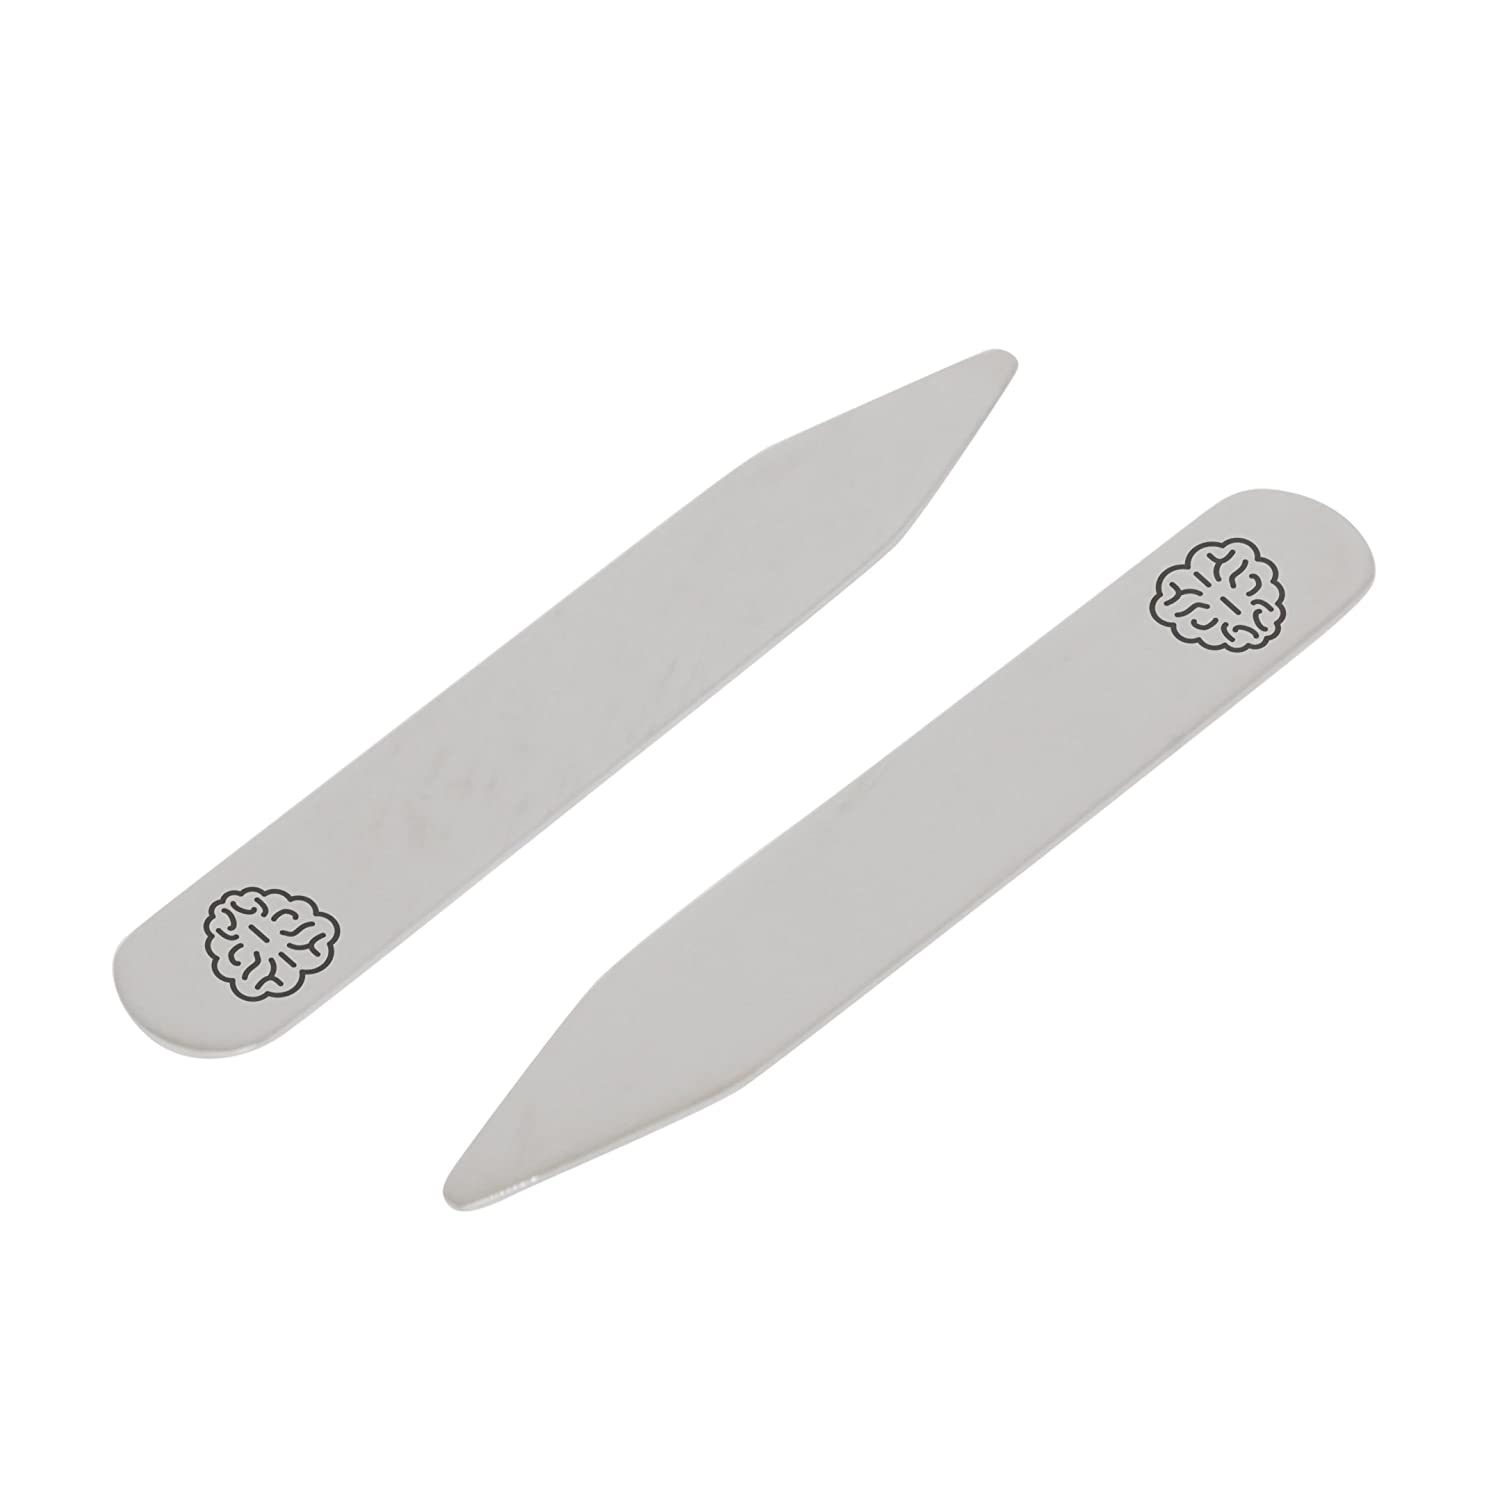 Made In USA 2.5 Inch Metal Collar Stiffeners MODERN GOODS SHOP Stainless Steel Collar Stays With Laser Engraved Brain Pattern Design